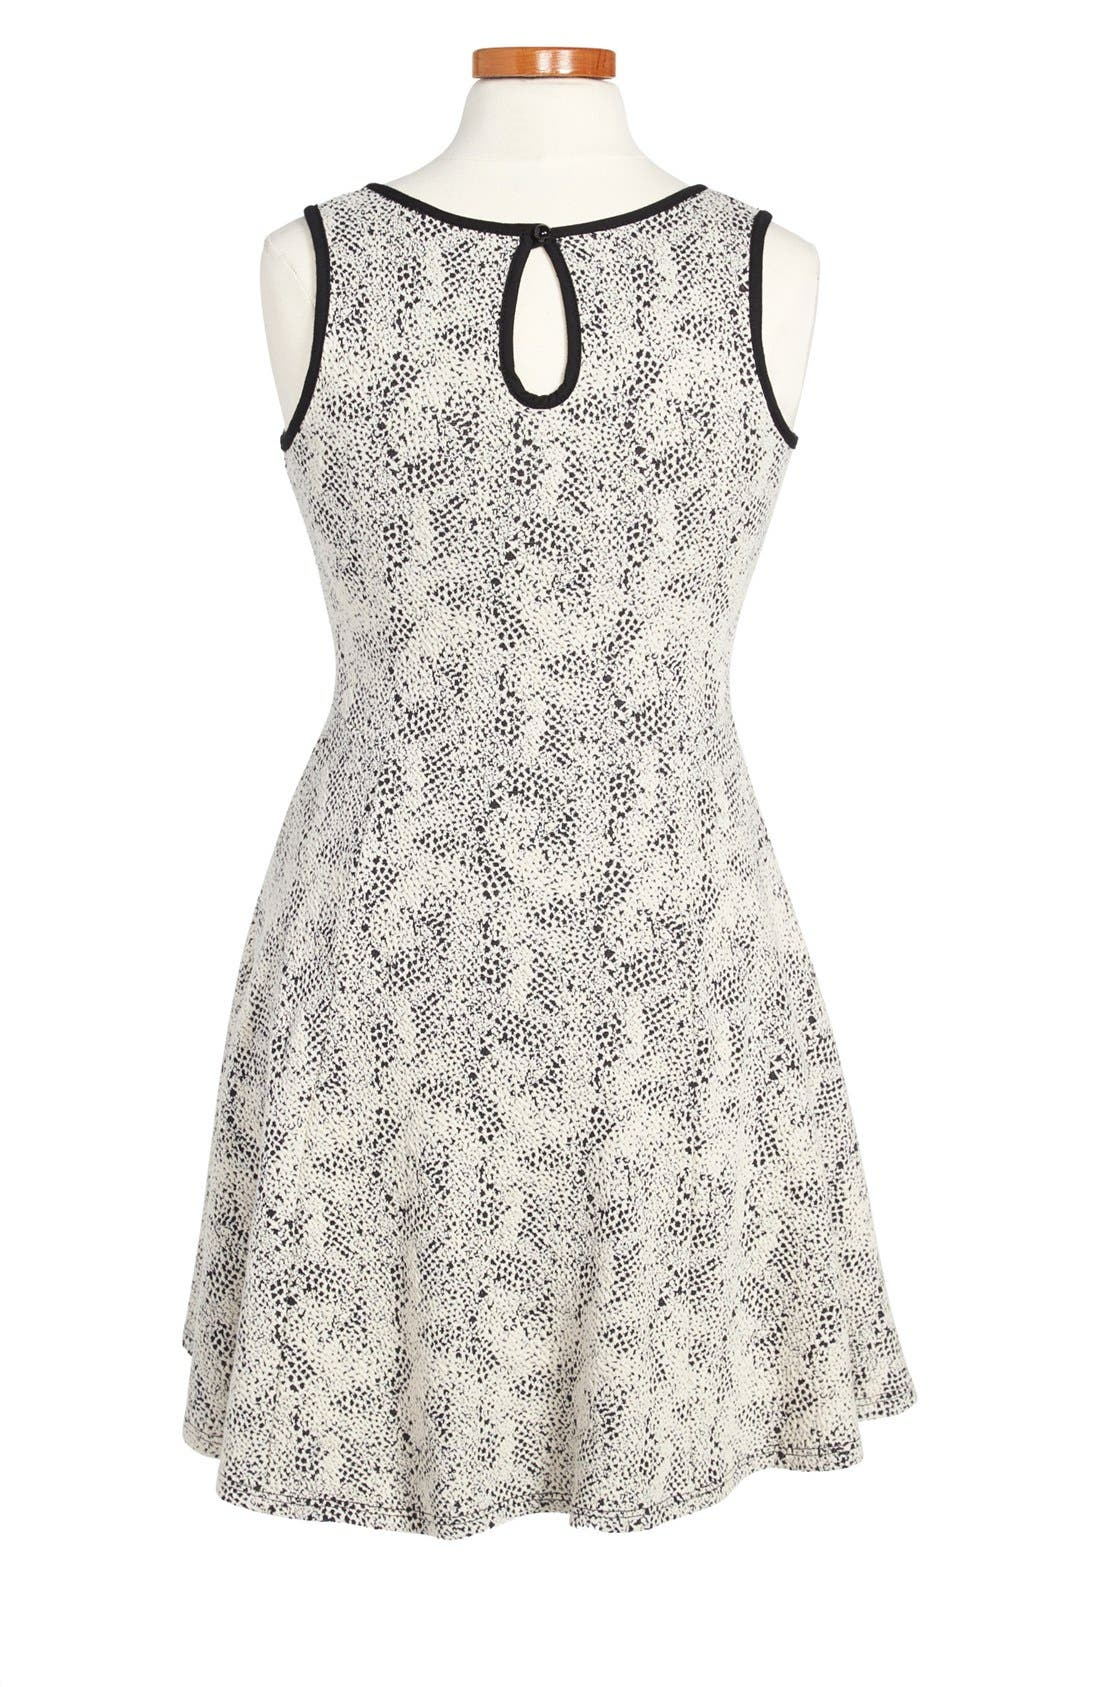 Alternate Image 2  - Soprano Sleeveless Knit Skater Dress (Little Girls & Big Girls)